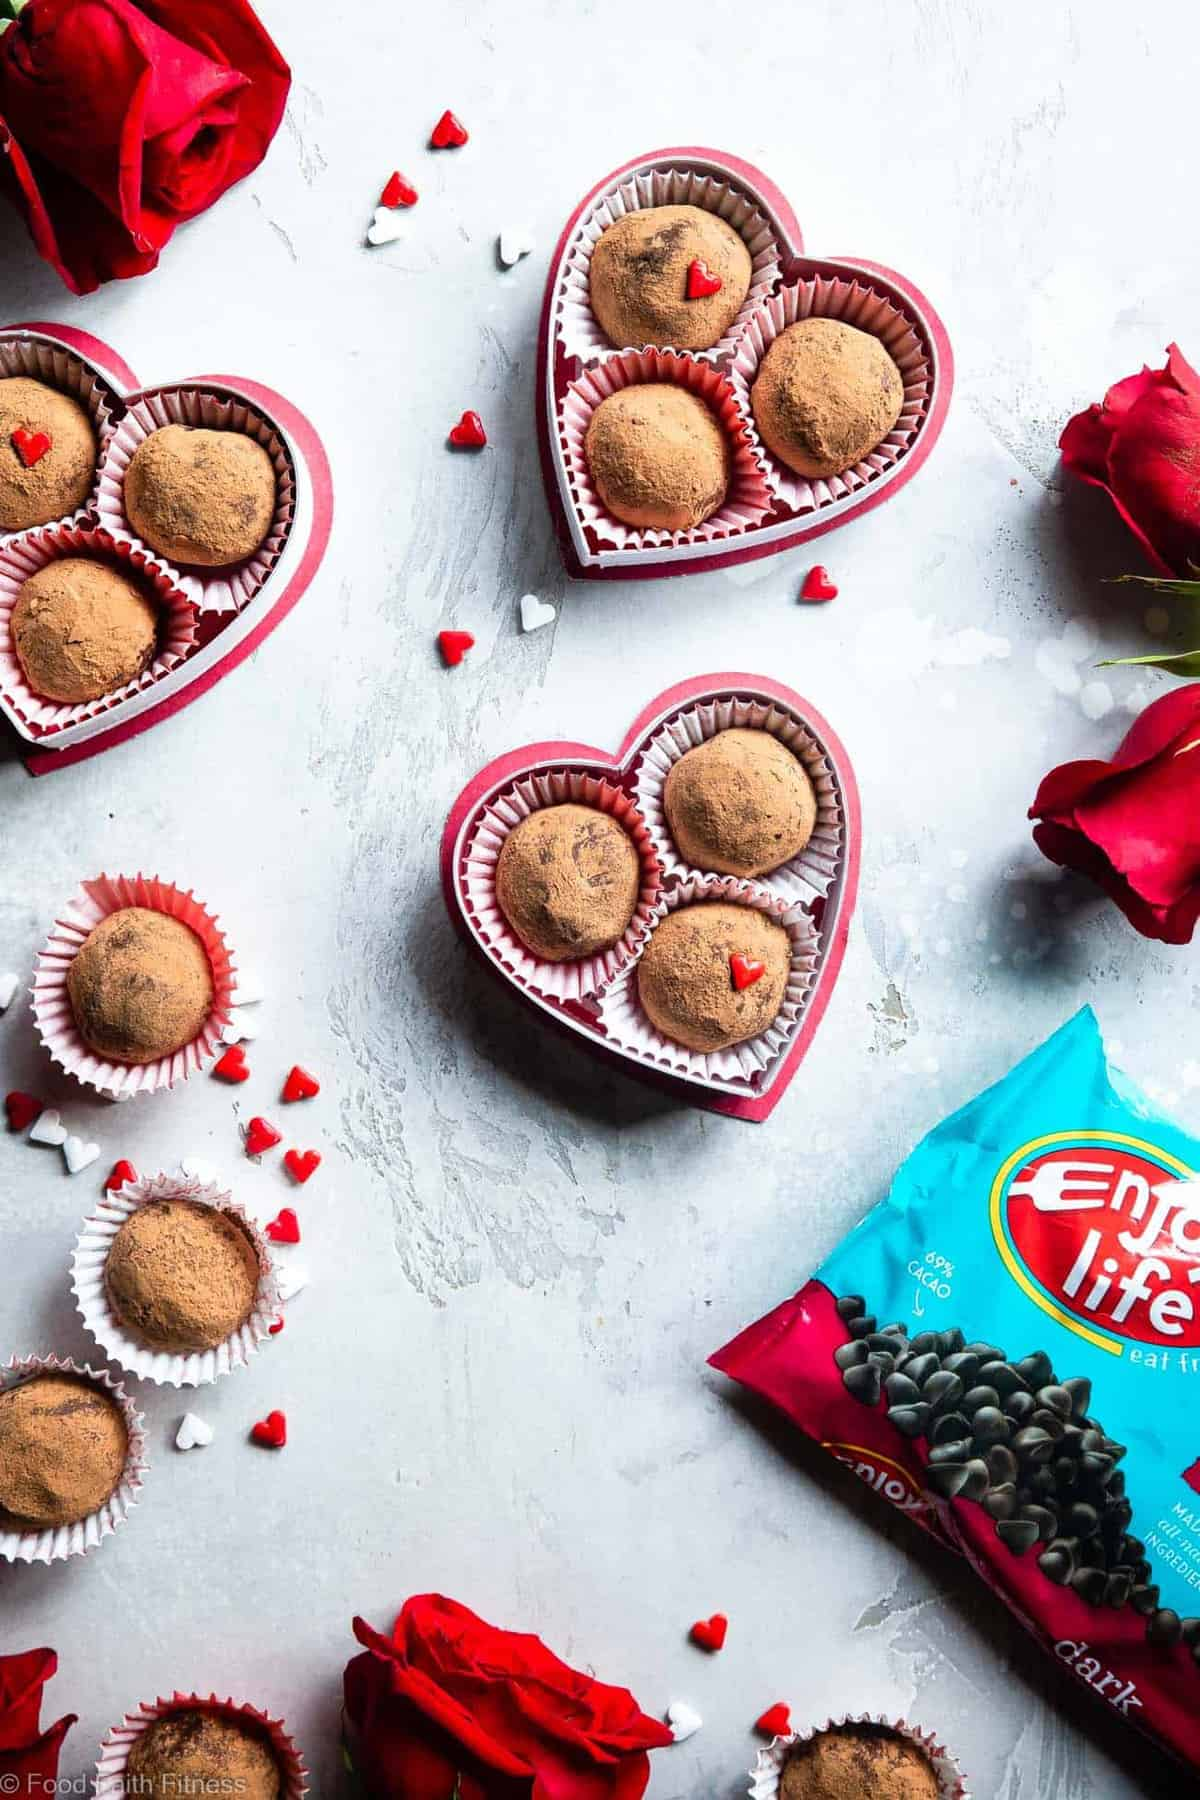 Dairy Free Vegan Chocolate Truffles -These Homemade ChocolateTruffles are only 3 ingredients and are SO easy to make! So creamy you won't know they're gluten, grain and dairy free, paleo friendly and healthier! | #Foodfaithfitness |